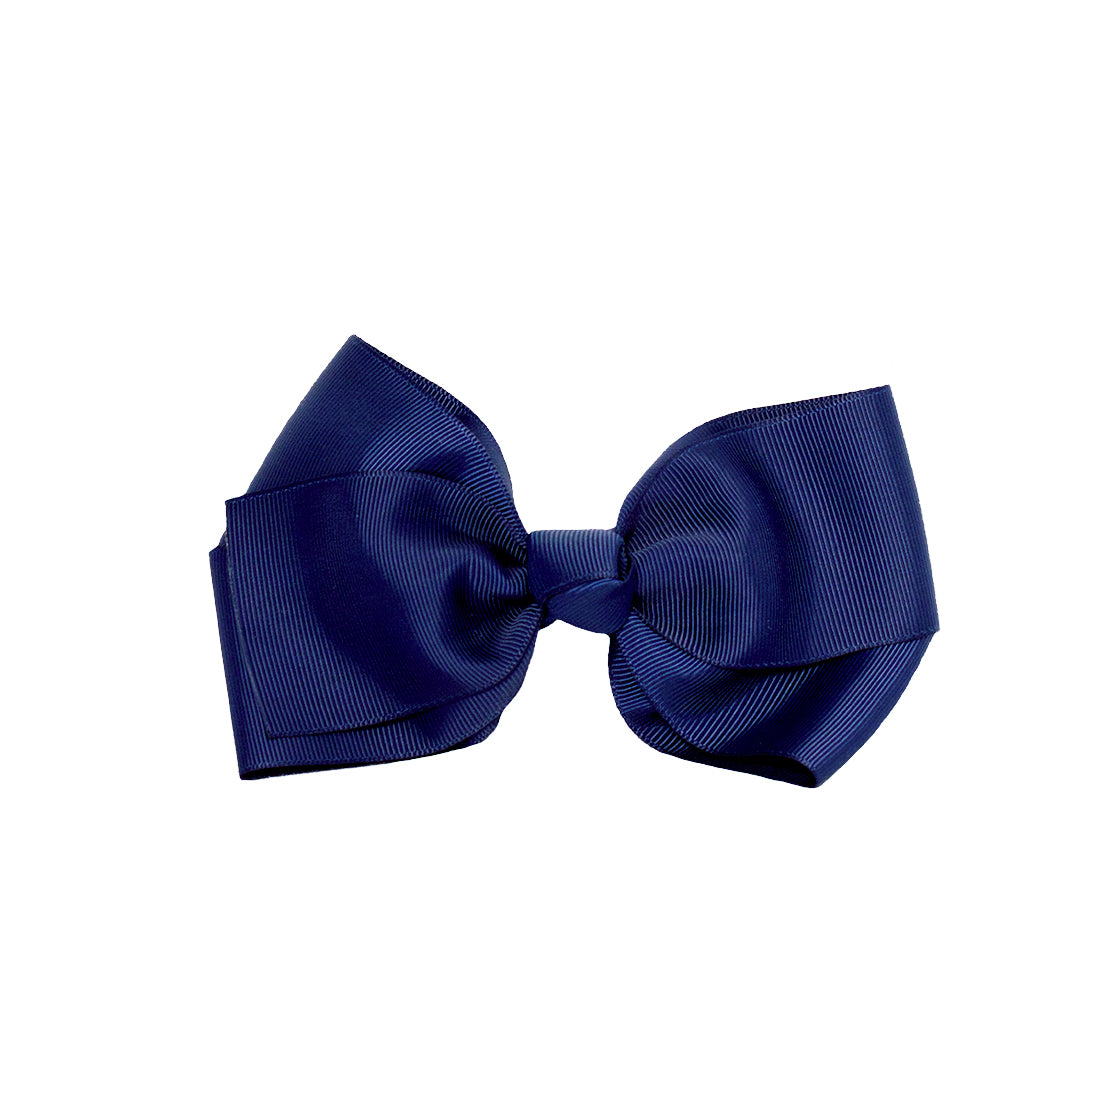 Mia® Spirit Grosgrain Ribbon Bow Barrette - large size - navy blue color - designed by #MiaKaminski of Mia Beauty